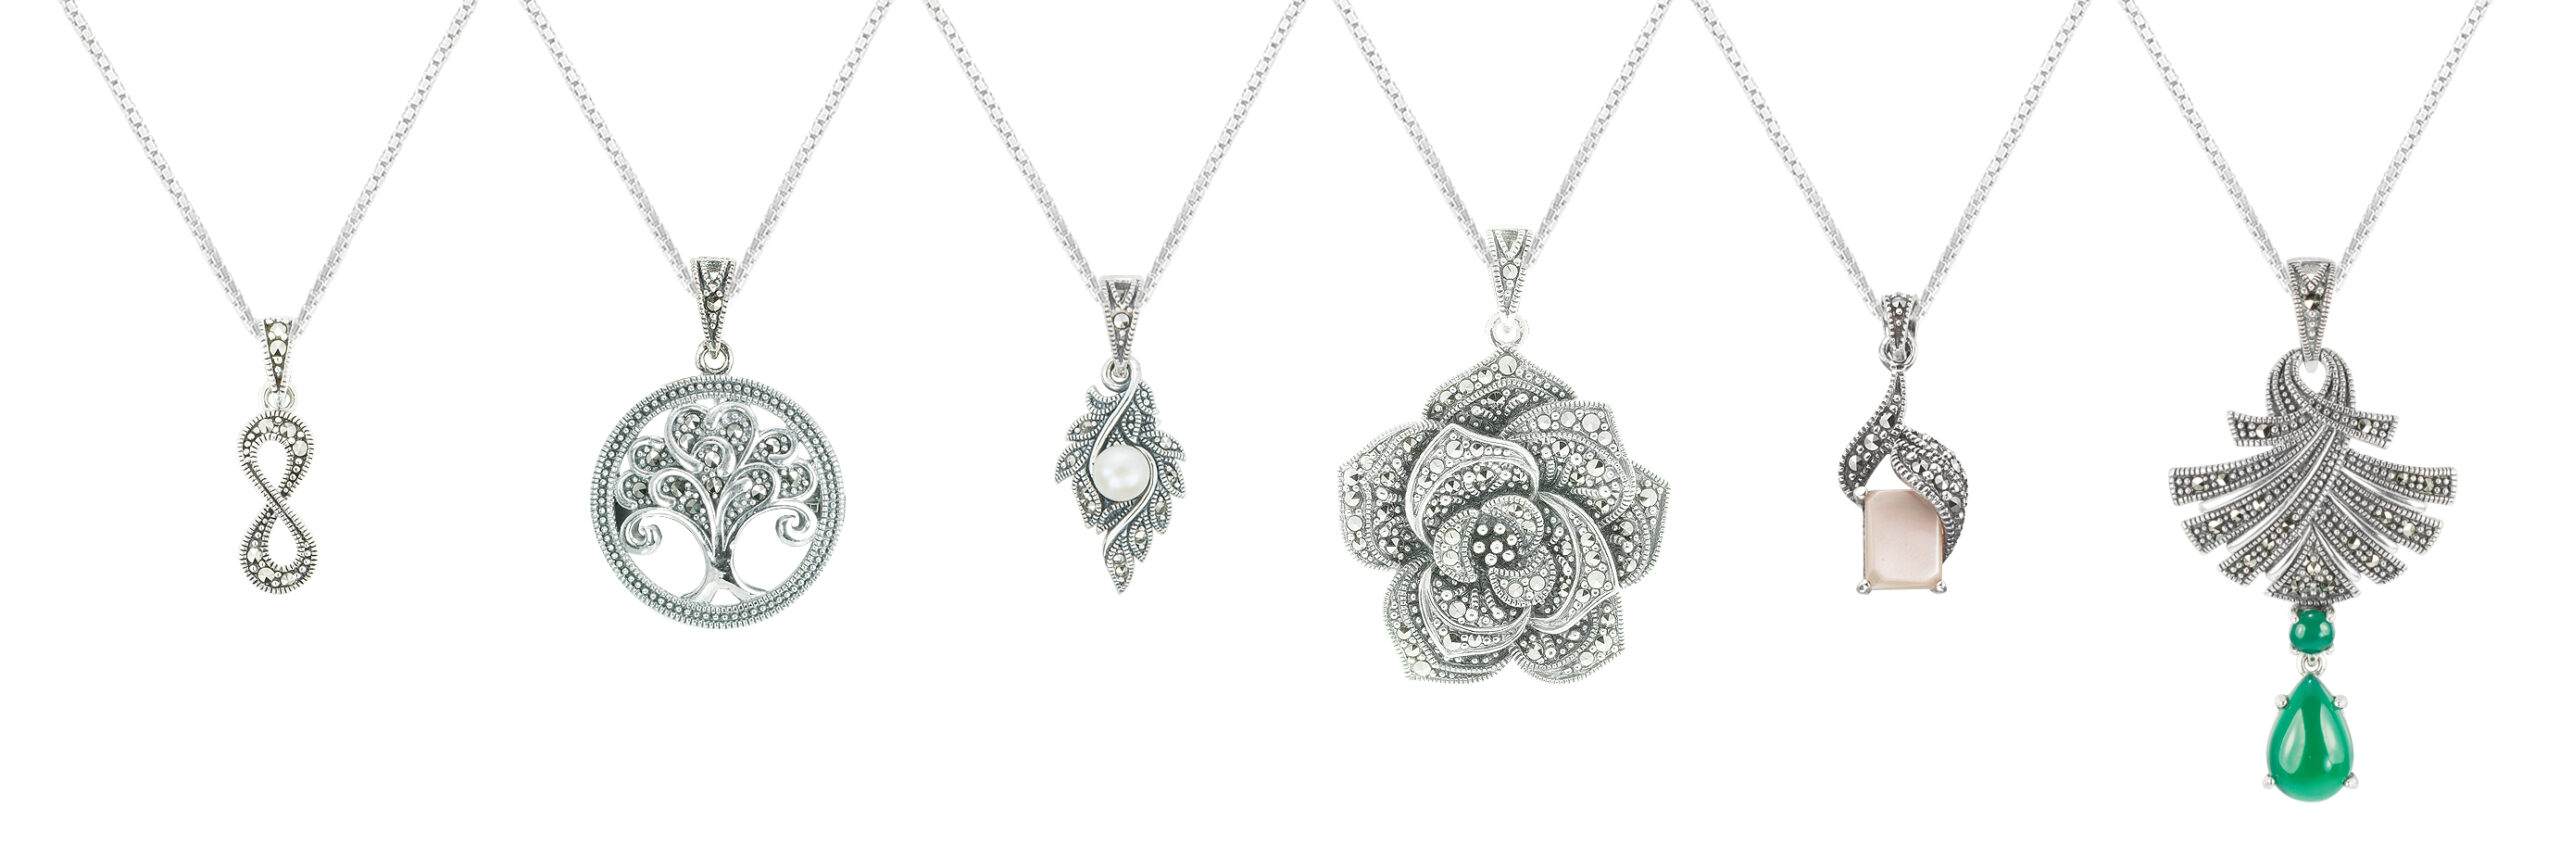 MOTHERS DAY NECKLACE 01